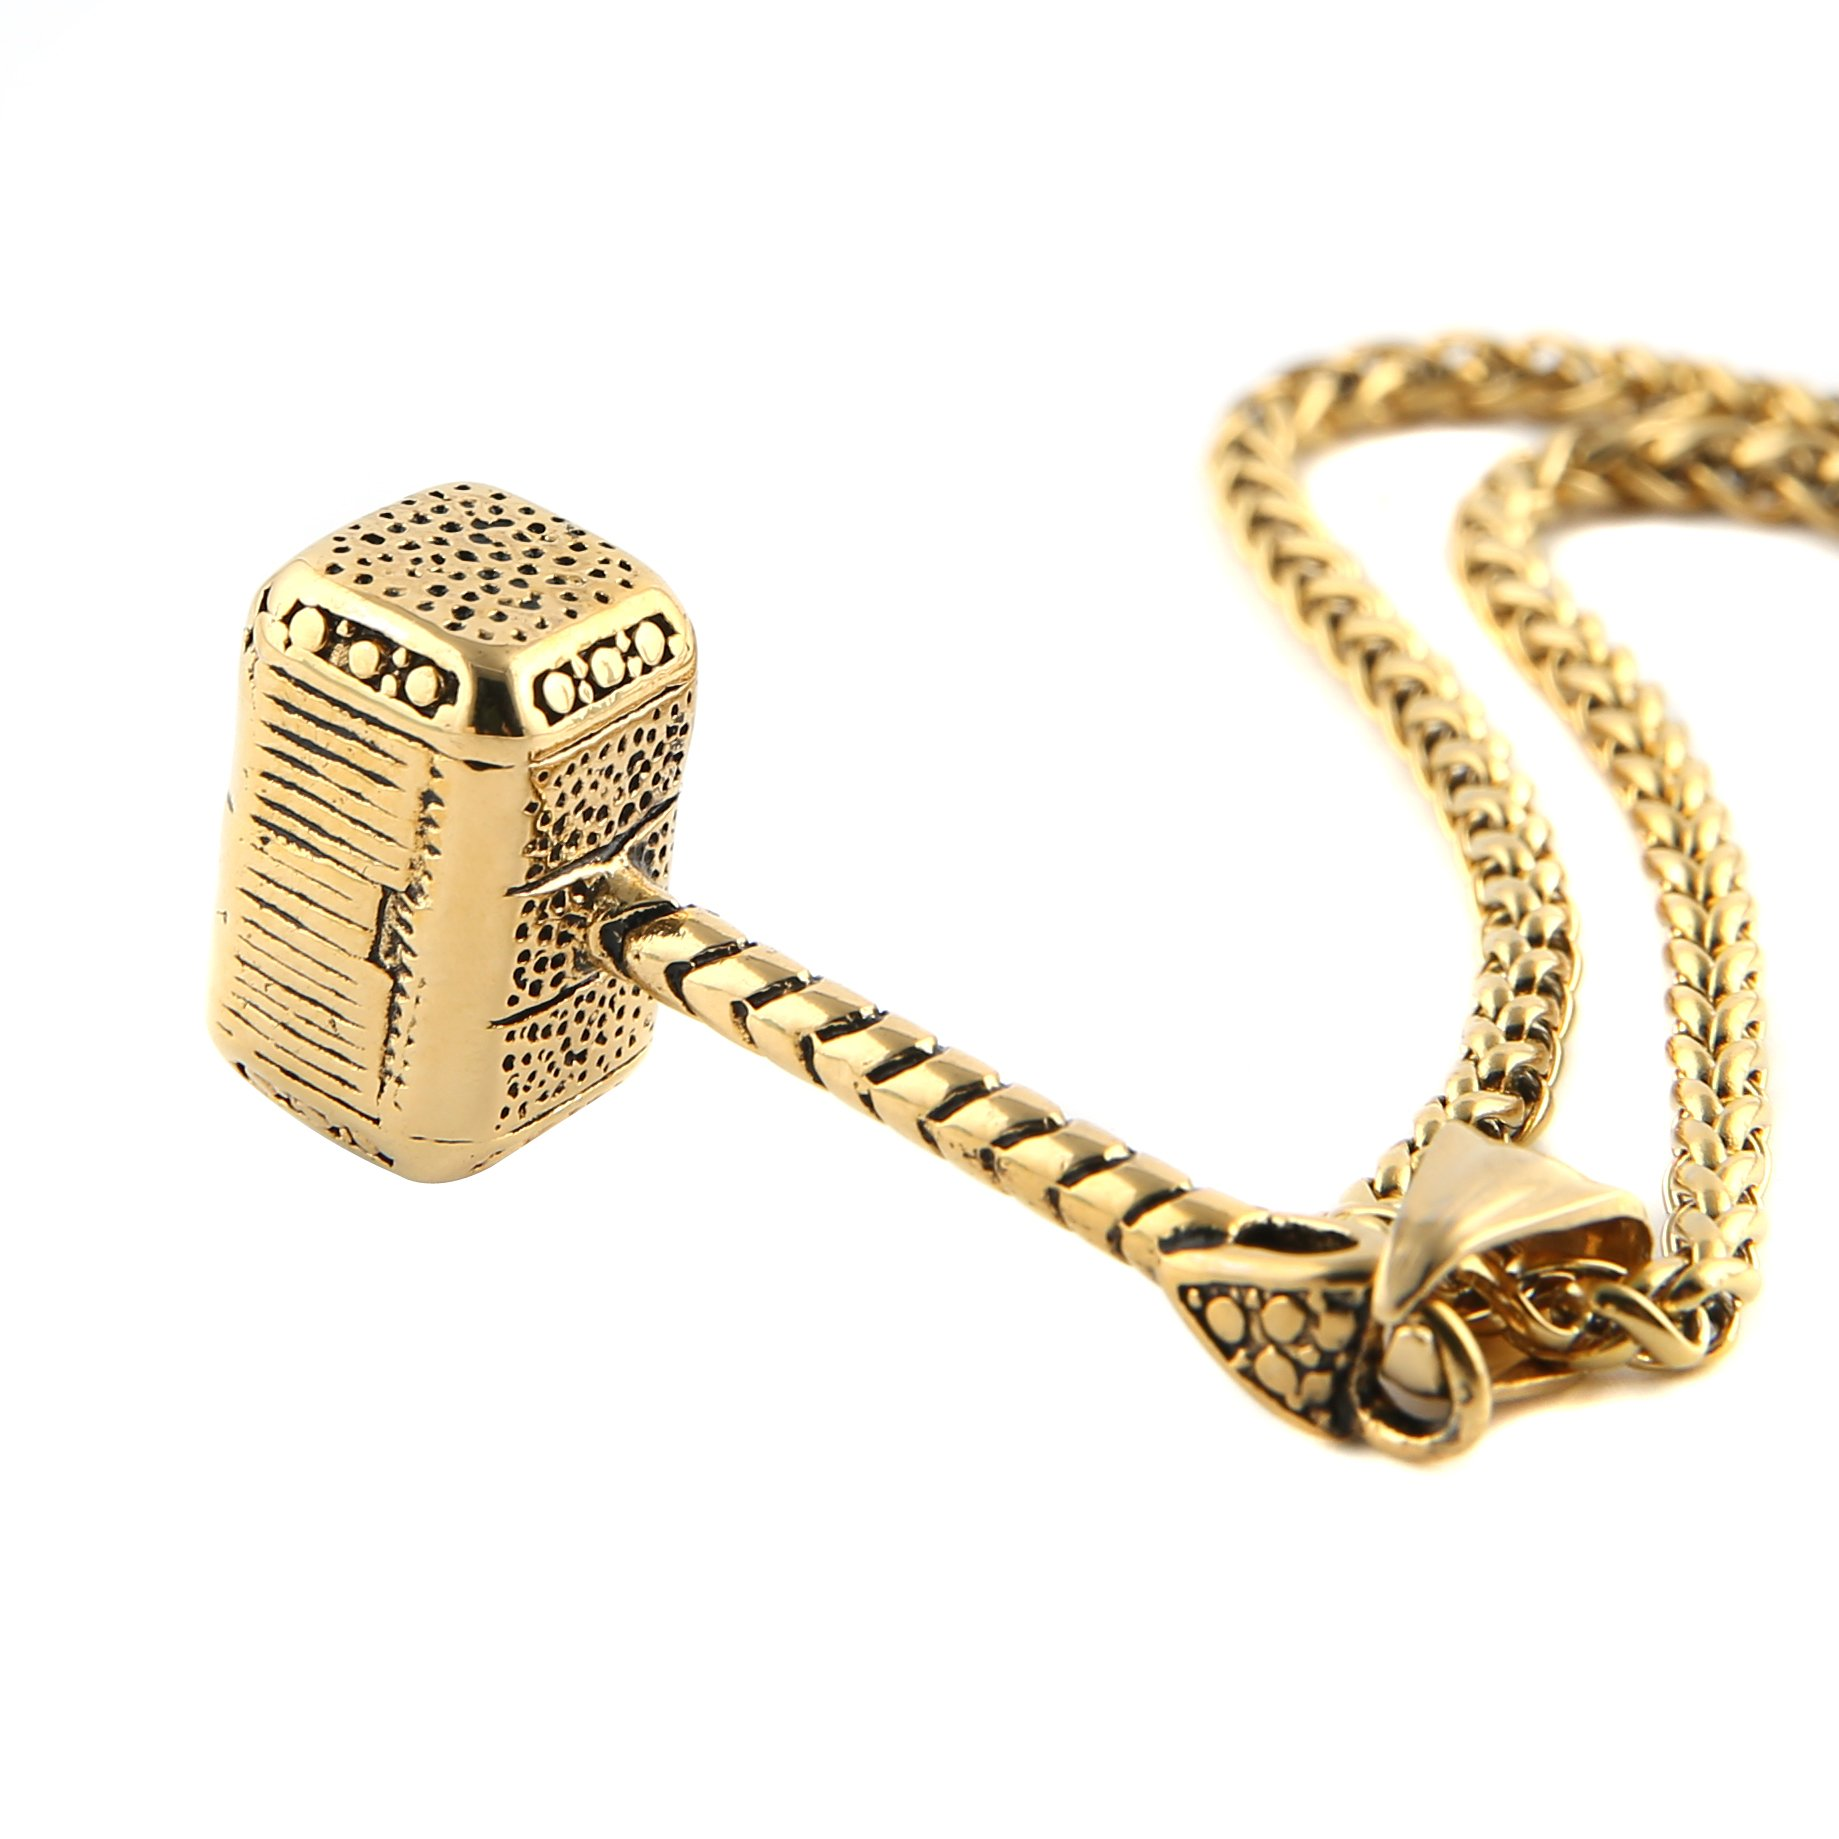 HZMAN Thor Hammer Stainless Steel Necklace For Men